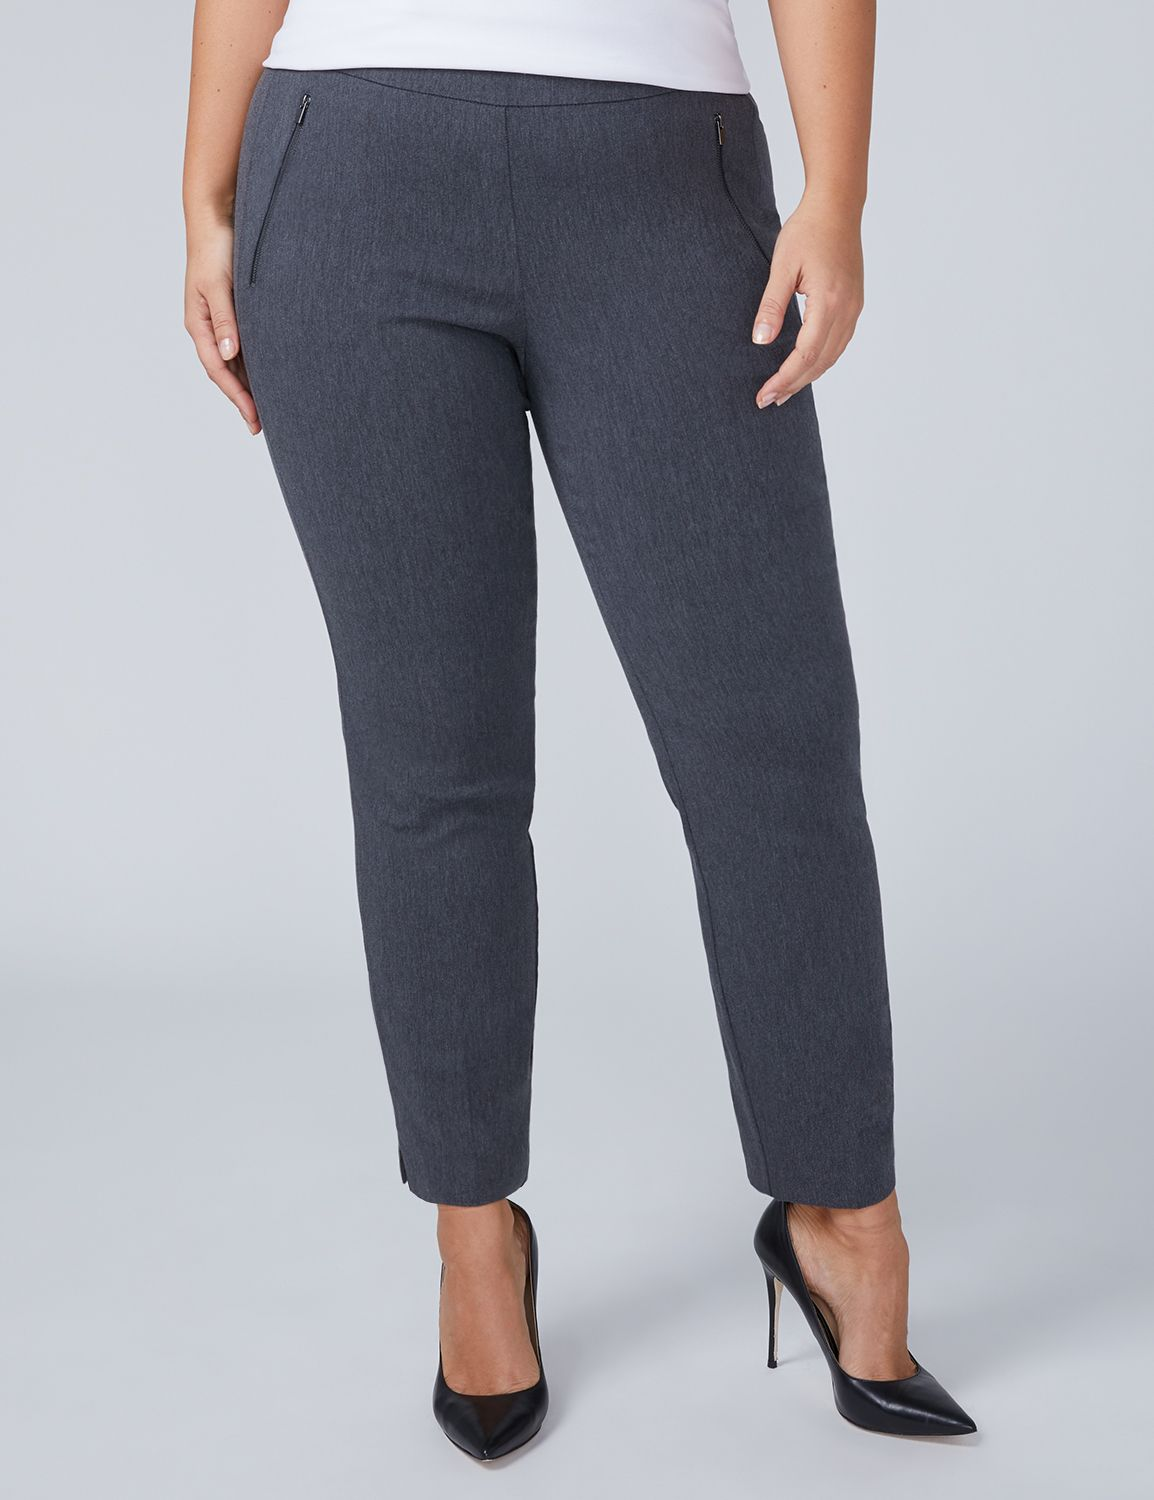 Lane Bryant Womens Allie Sexy Stretch Ankle Pant - Pull On 12 Gray